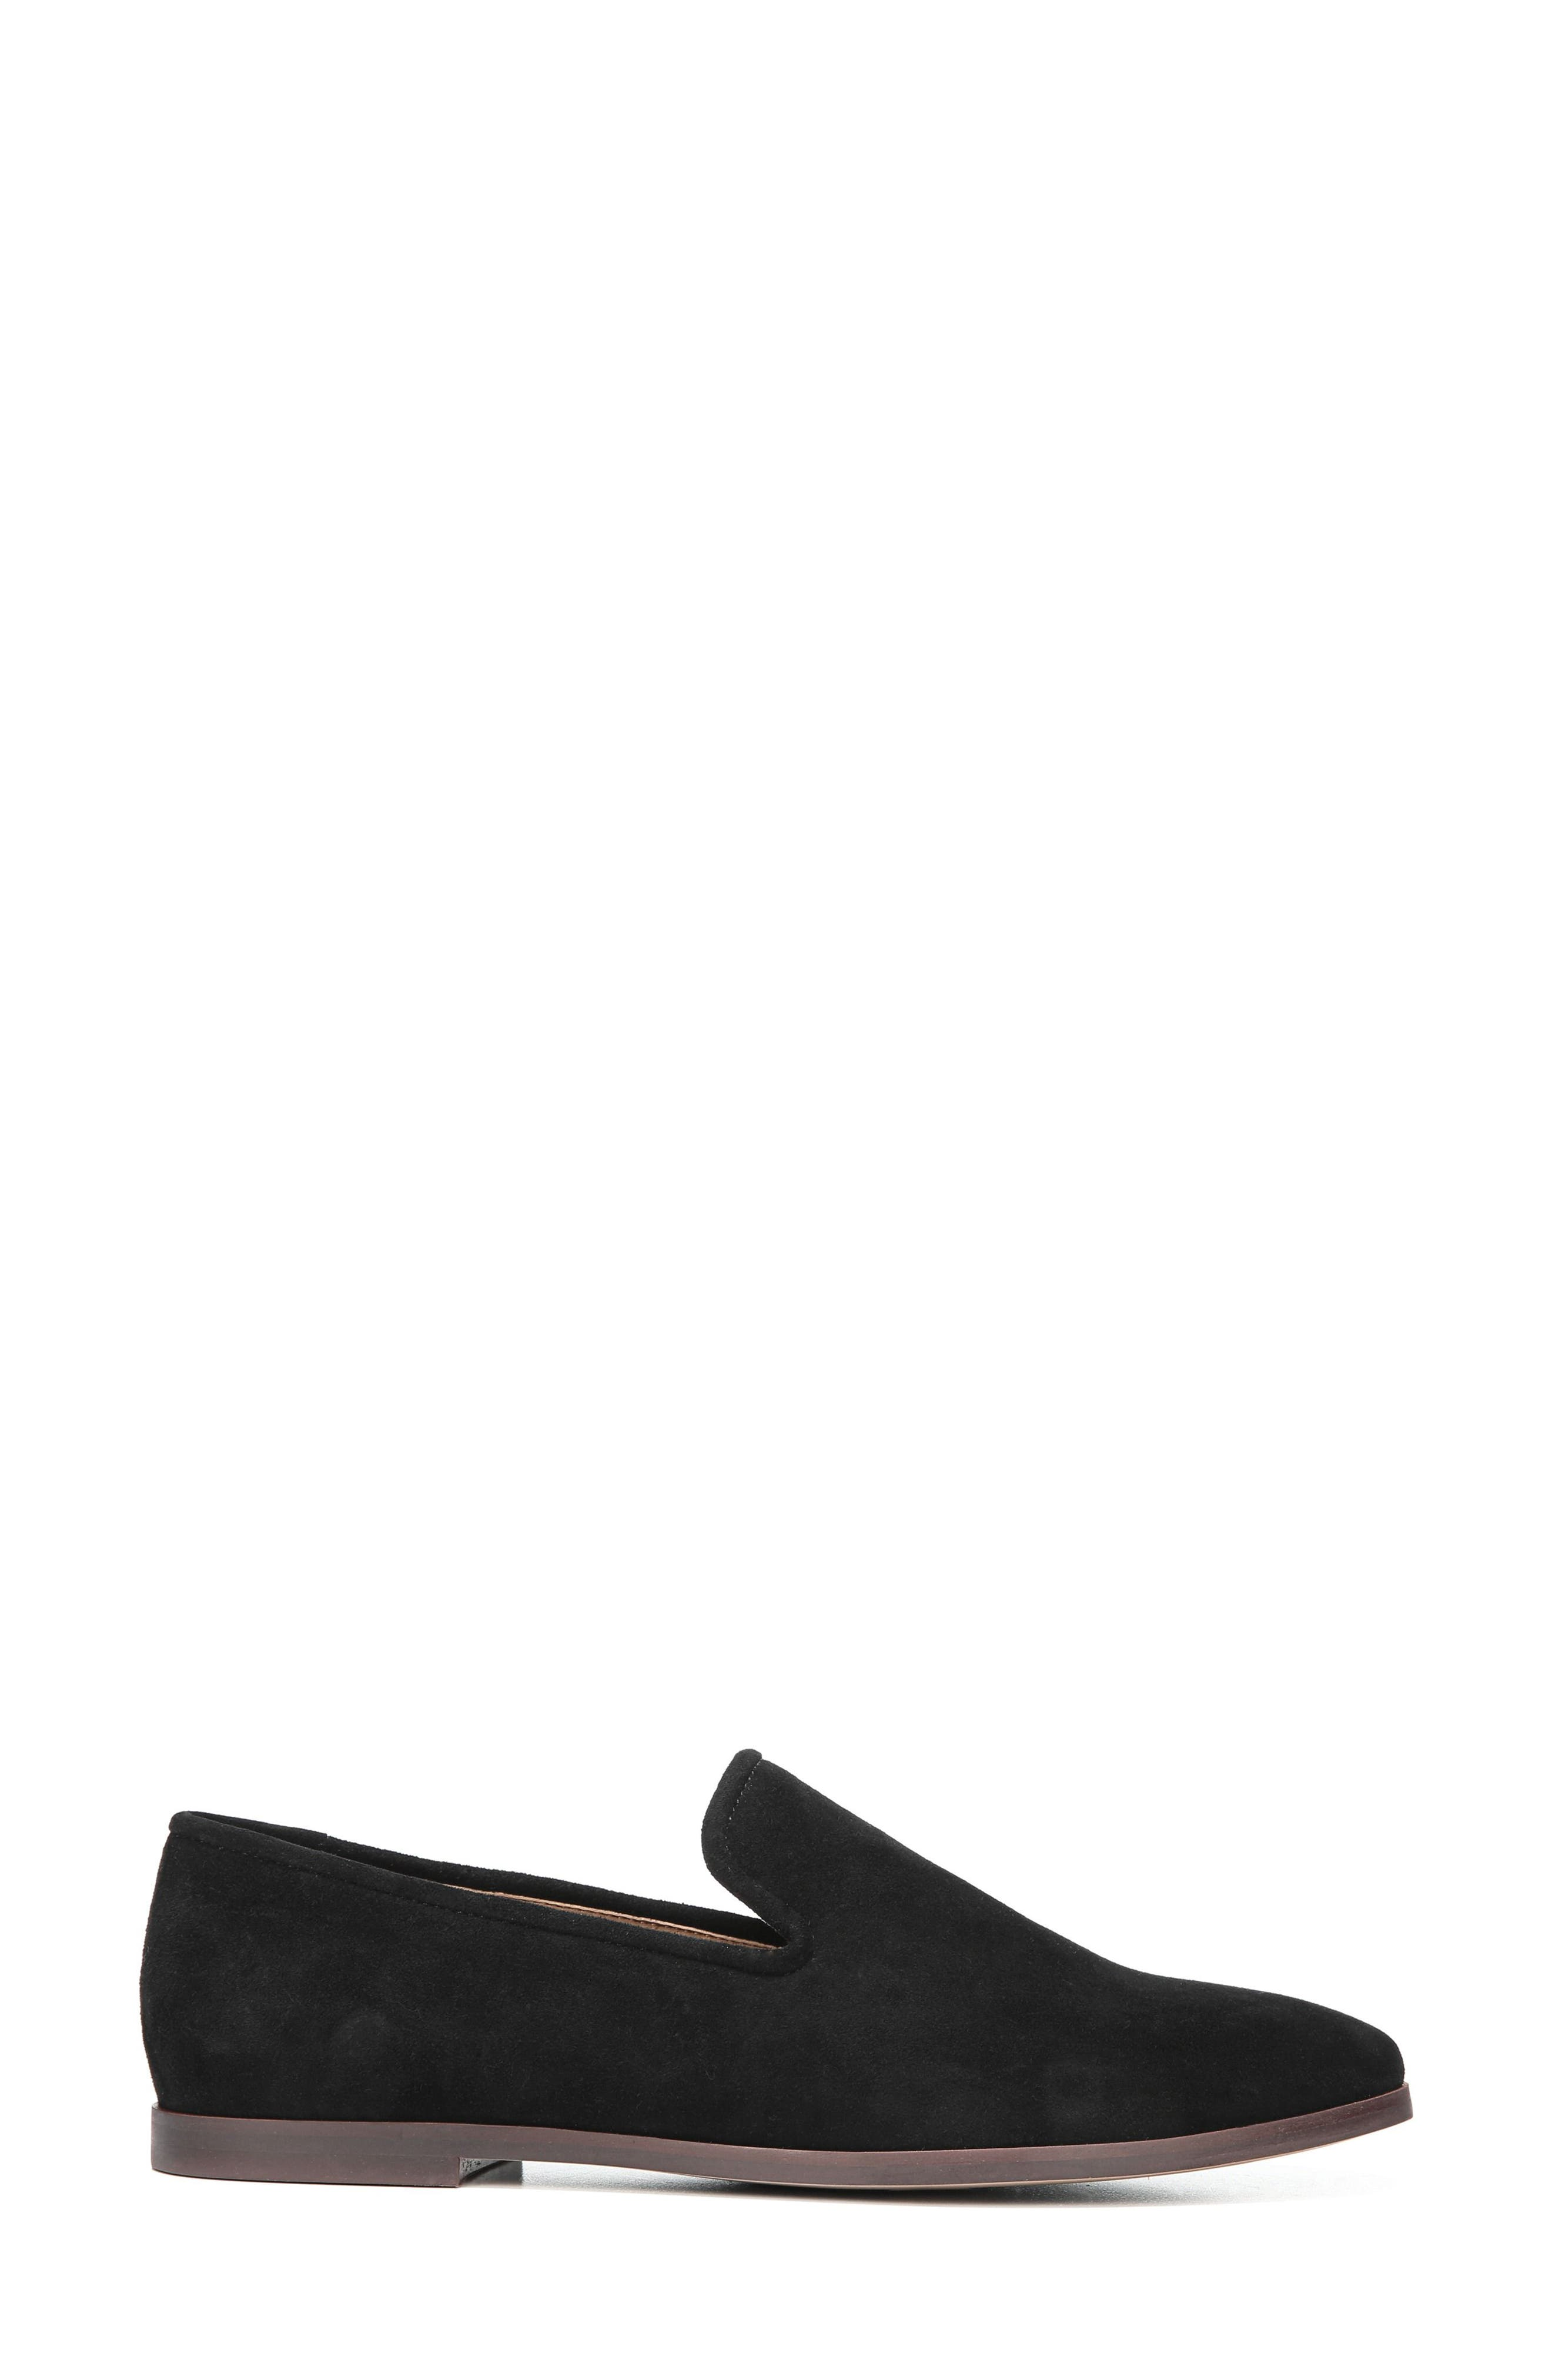 Ayers Loafer Flat,                             Alternate thumbnail 3, color,                             003